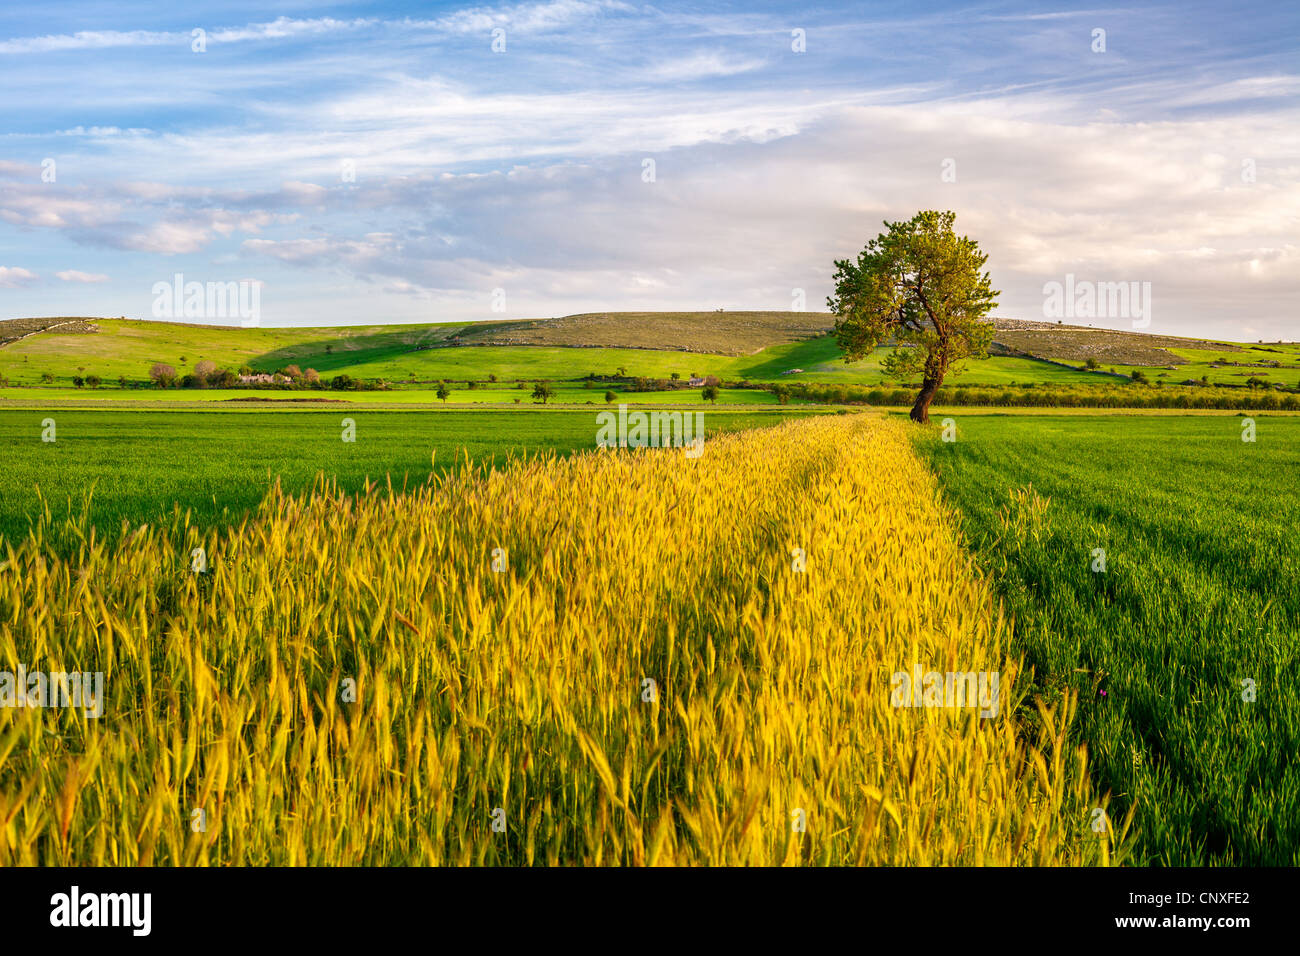 Wheat Field with a Tree on Sunset - Stock Image